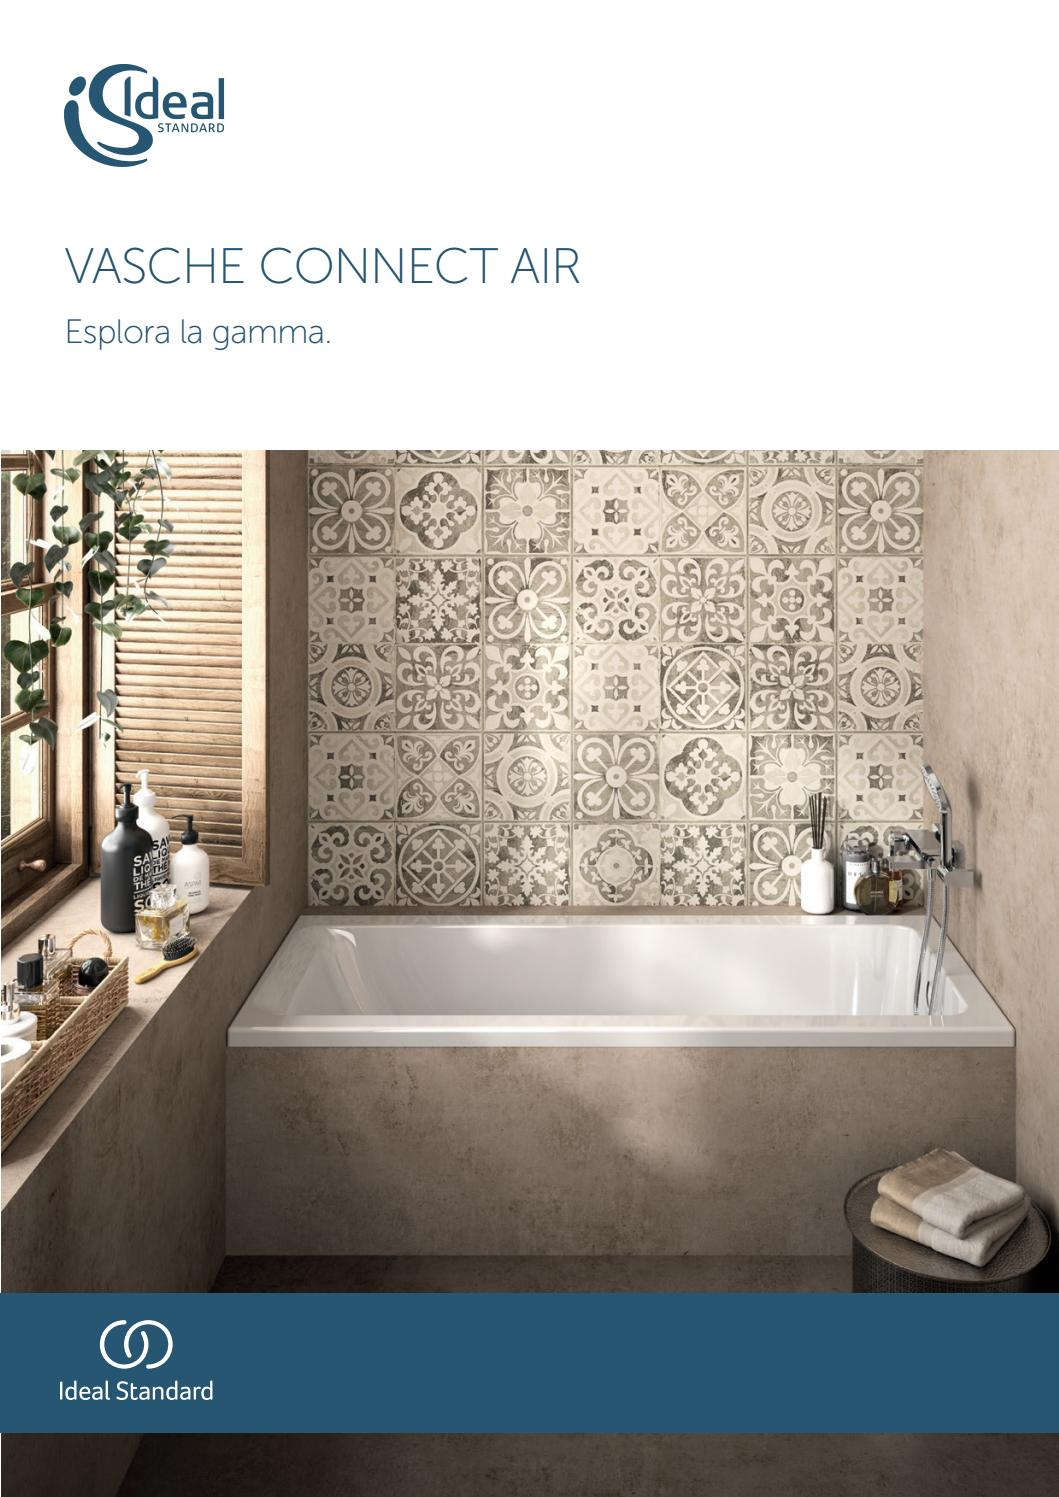 Connect Air Vasche Da Bagno Ideal Standard Jo Bagno It By Cataloghi On Line Issuu